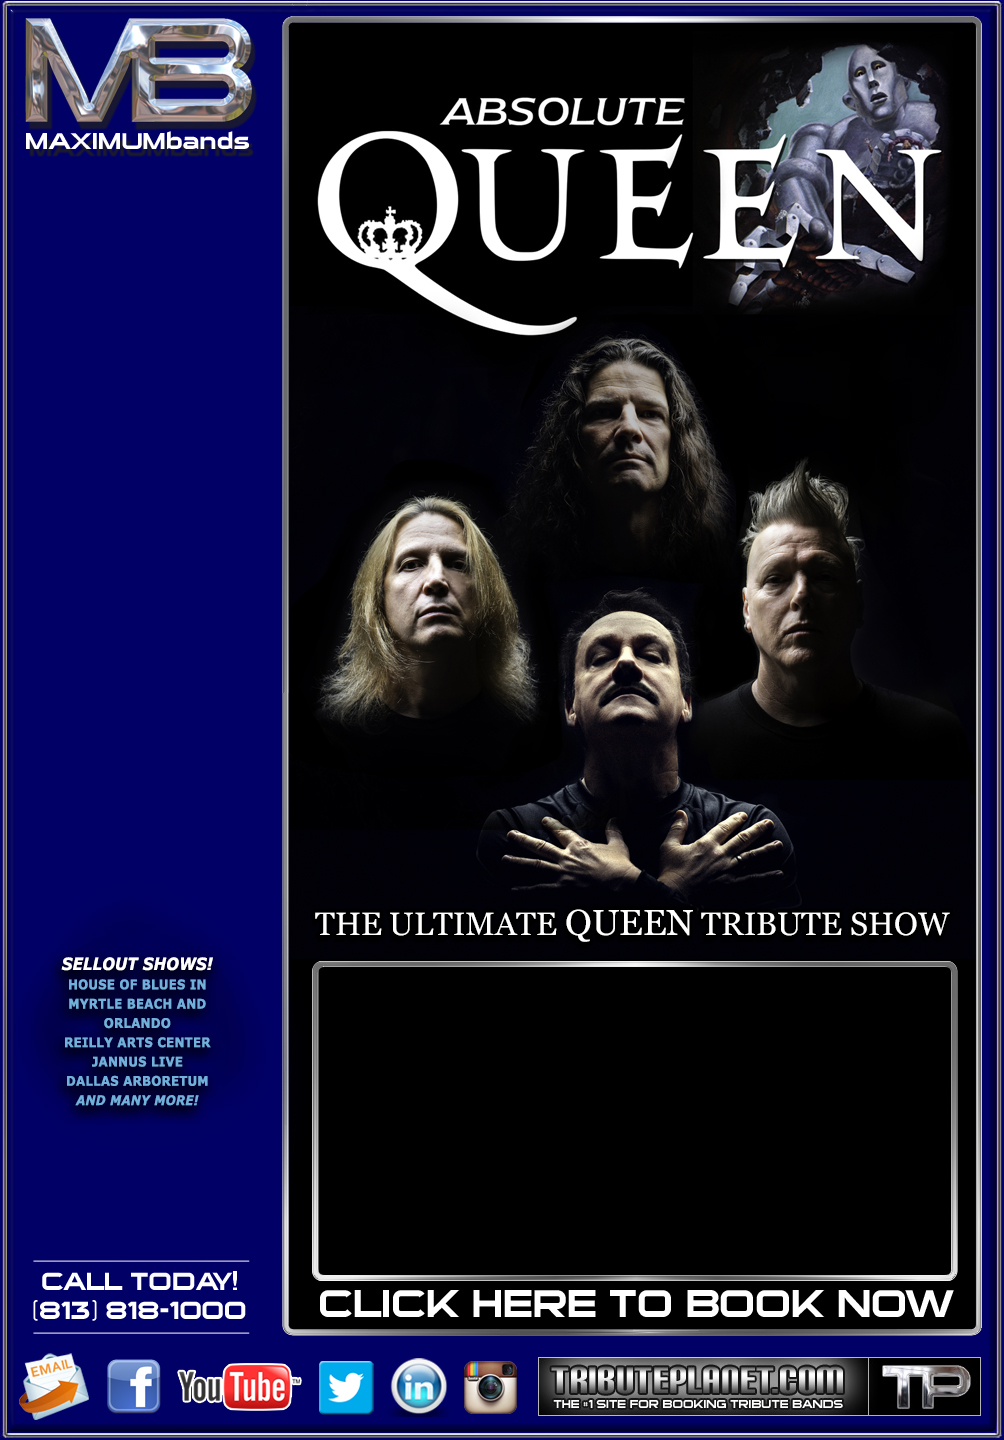 Queen Tribute Absolute Queen from Florida